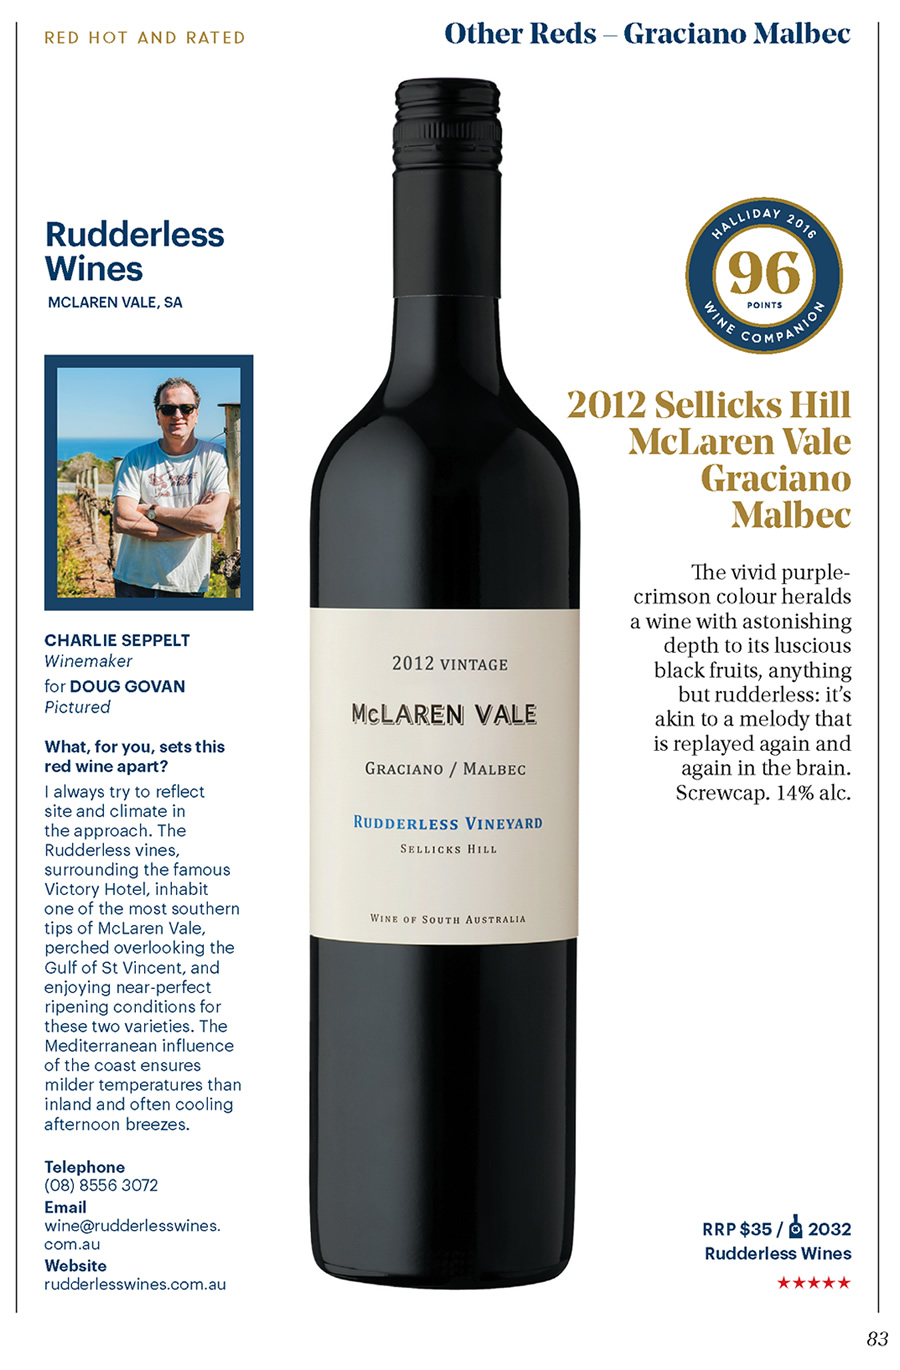 2012 Graciano Malbec – 96 points – Halliday 2016 Wine Companion